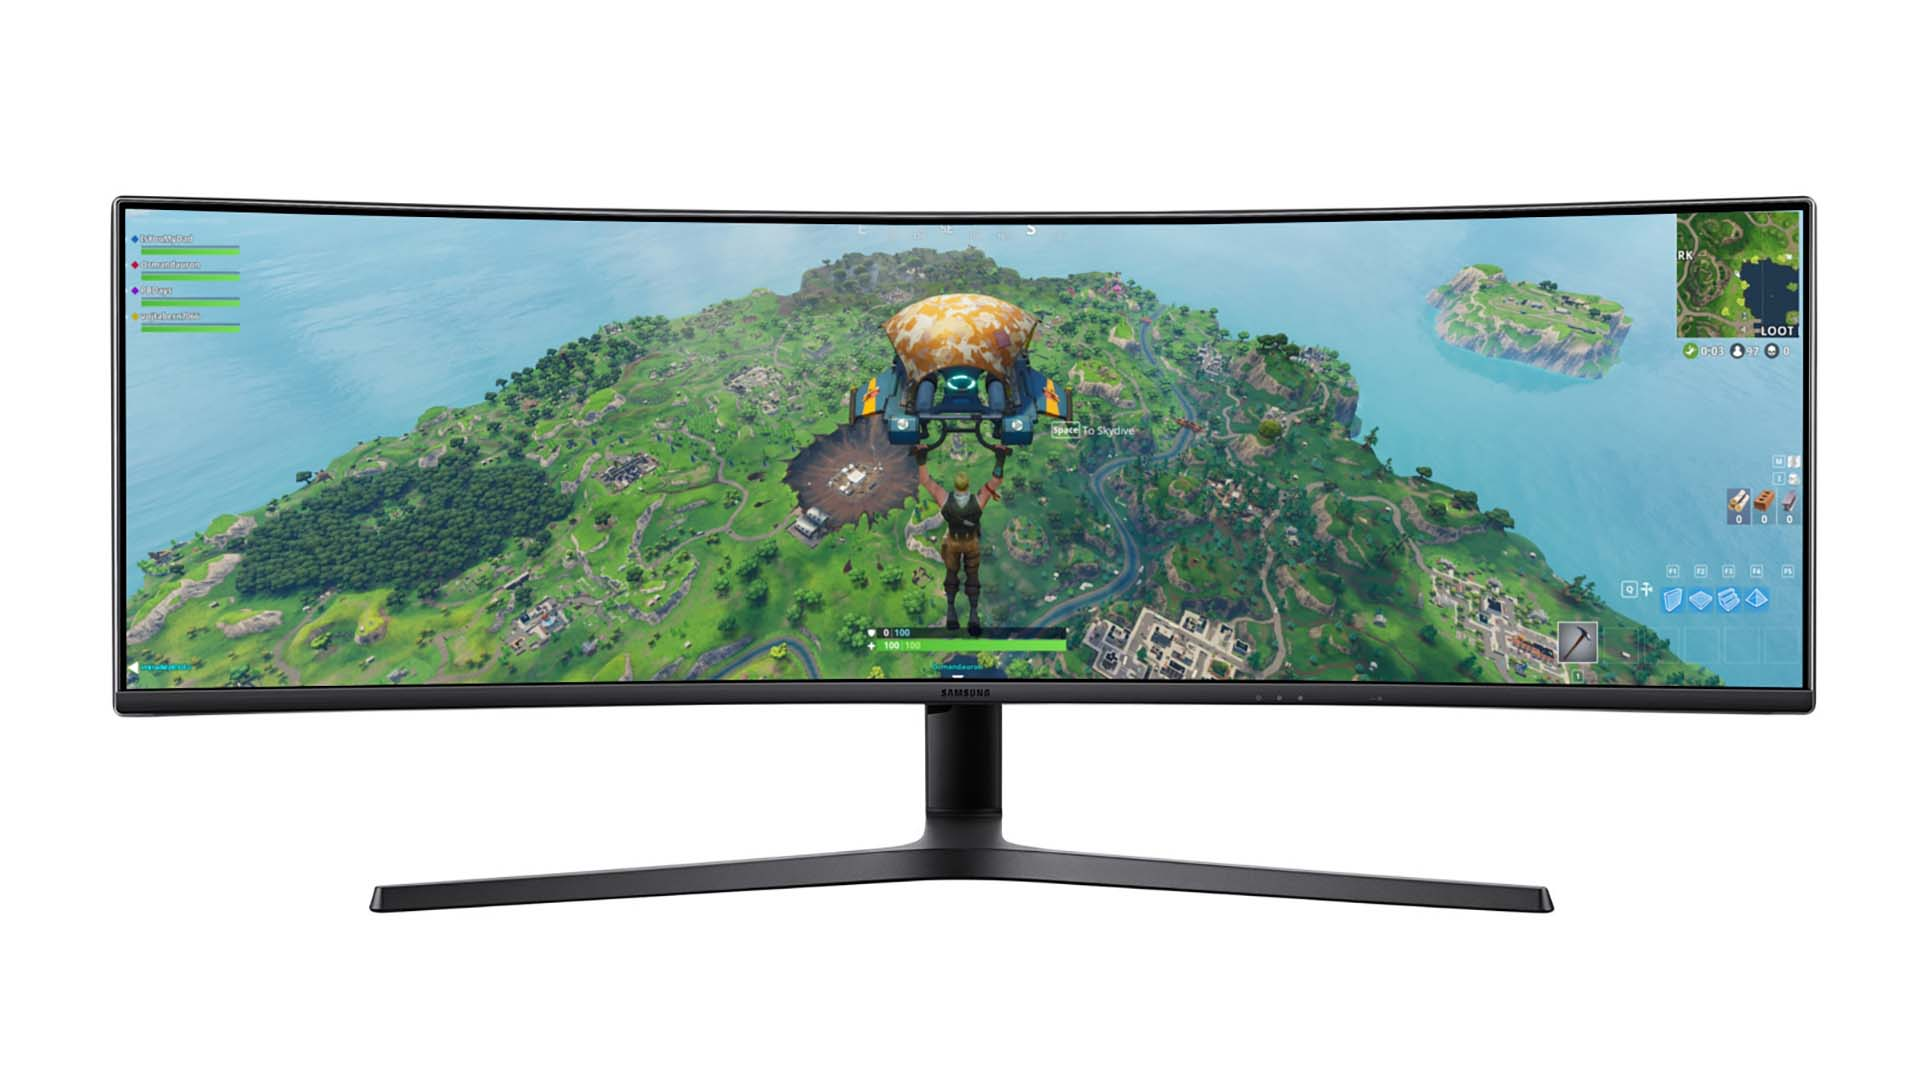 Black Friday gaming monitor deals 2019 – 24-inch BenQ IPS for $100